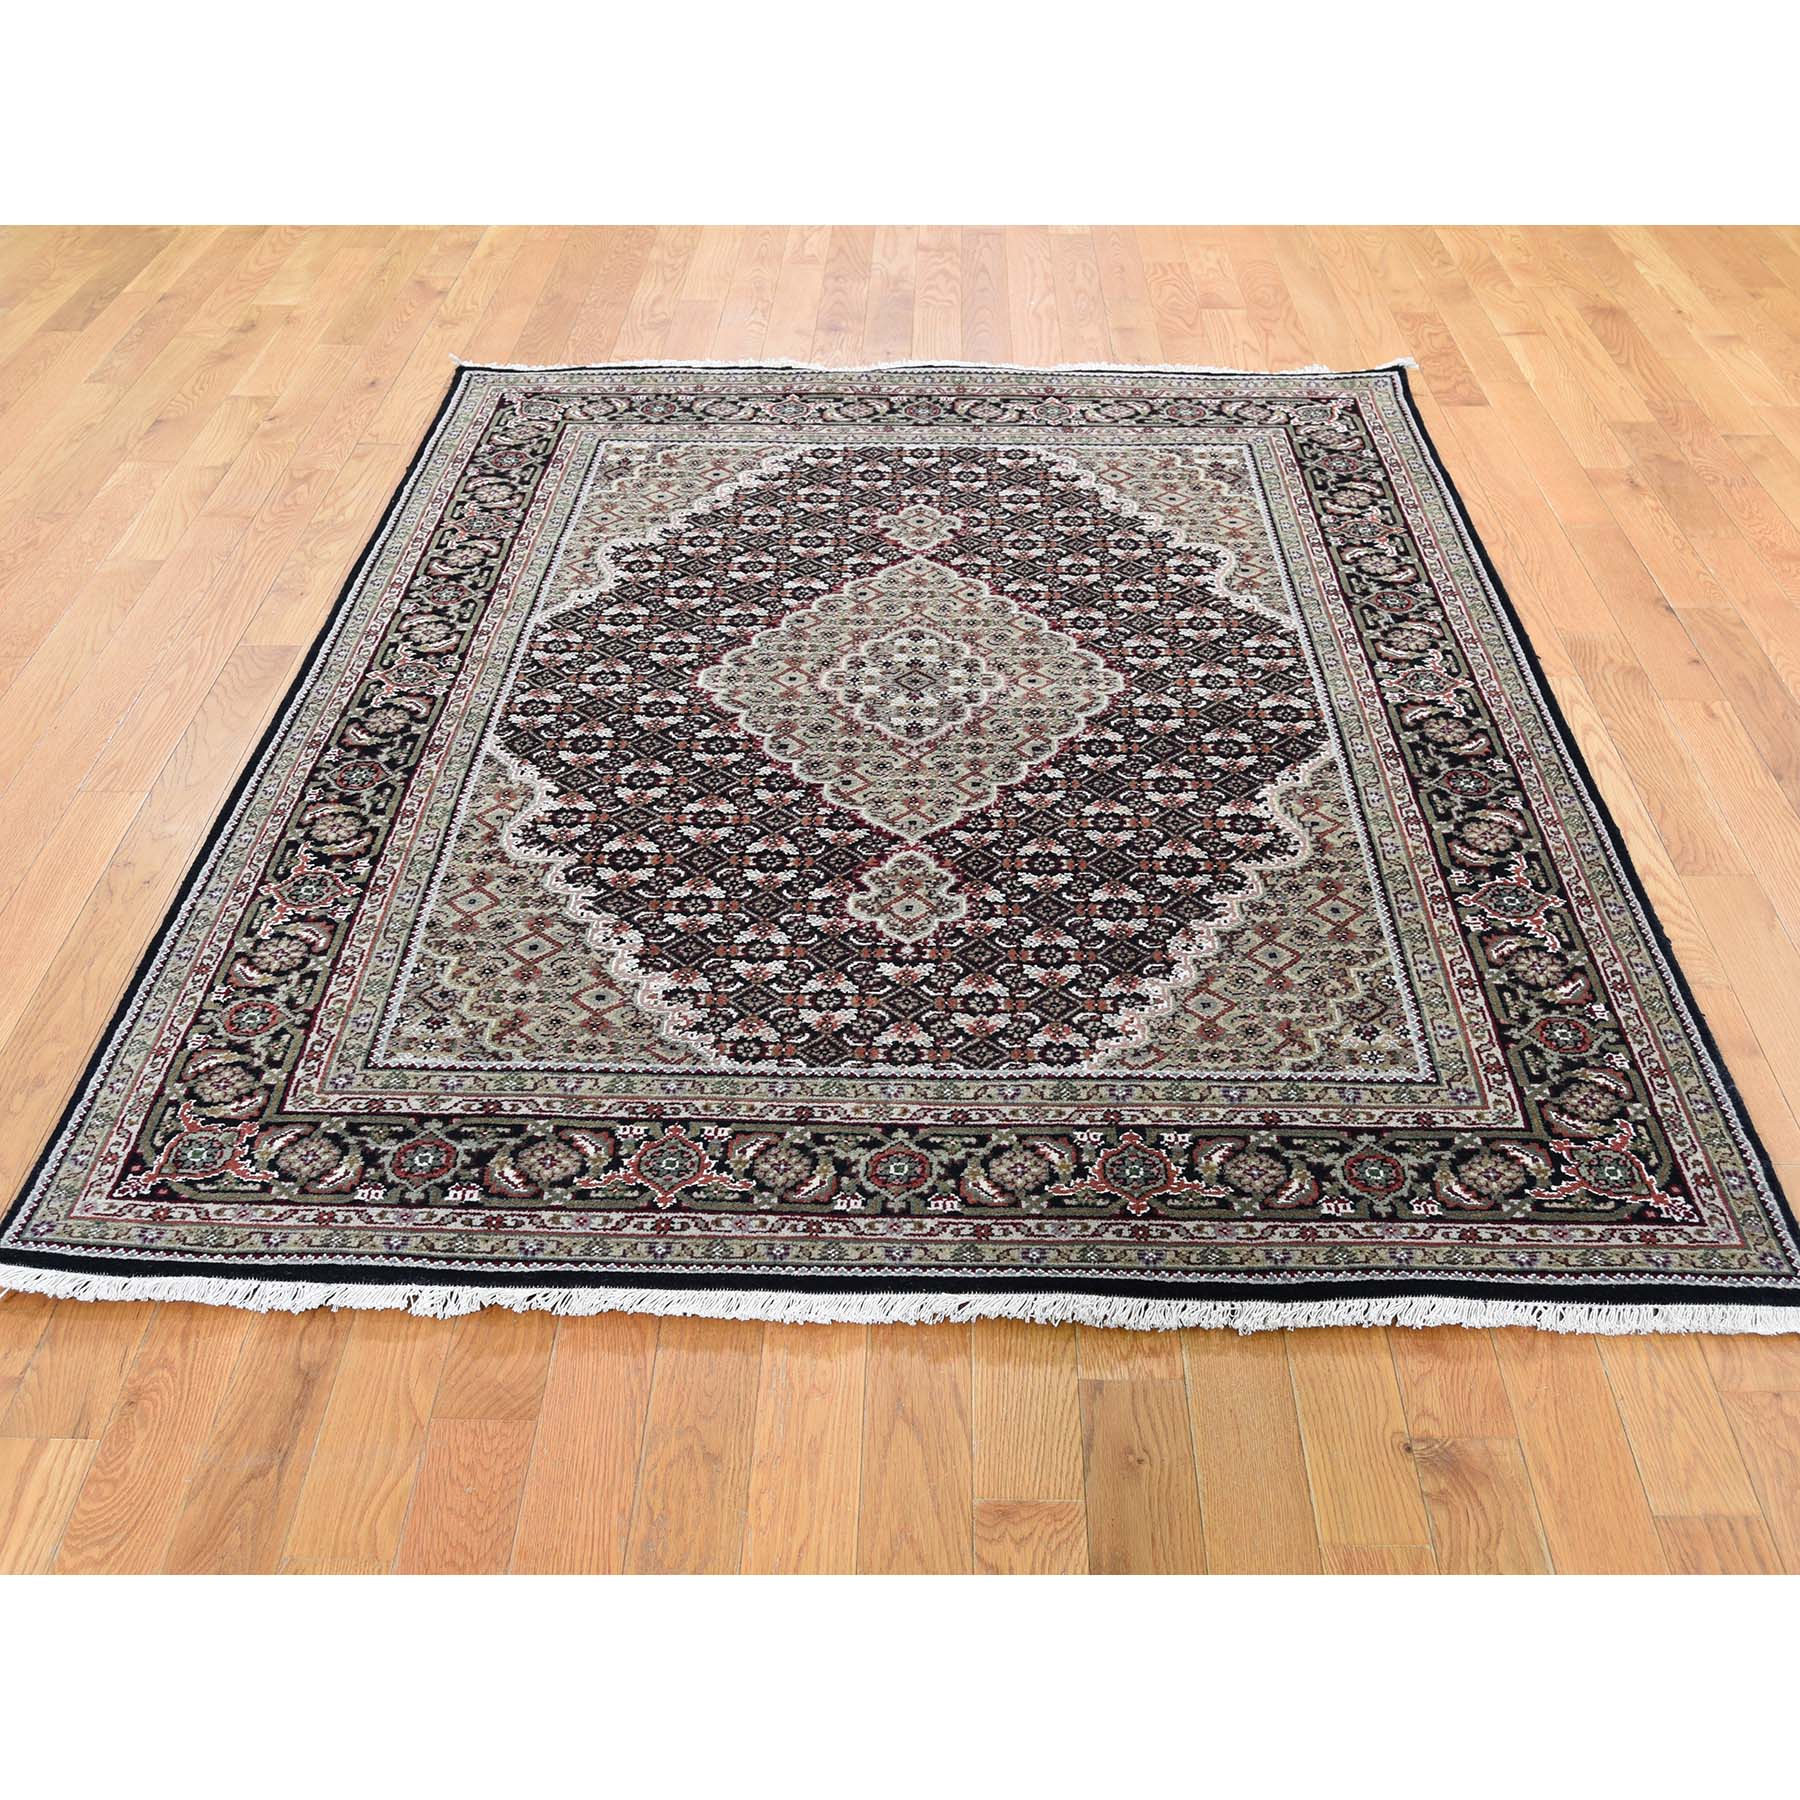 "5'x6'8"" Black Tabriz Mahi Wool and Silk Hand-Knotted Oriental Rug"